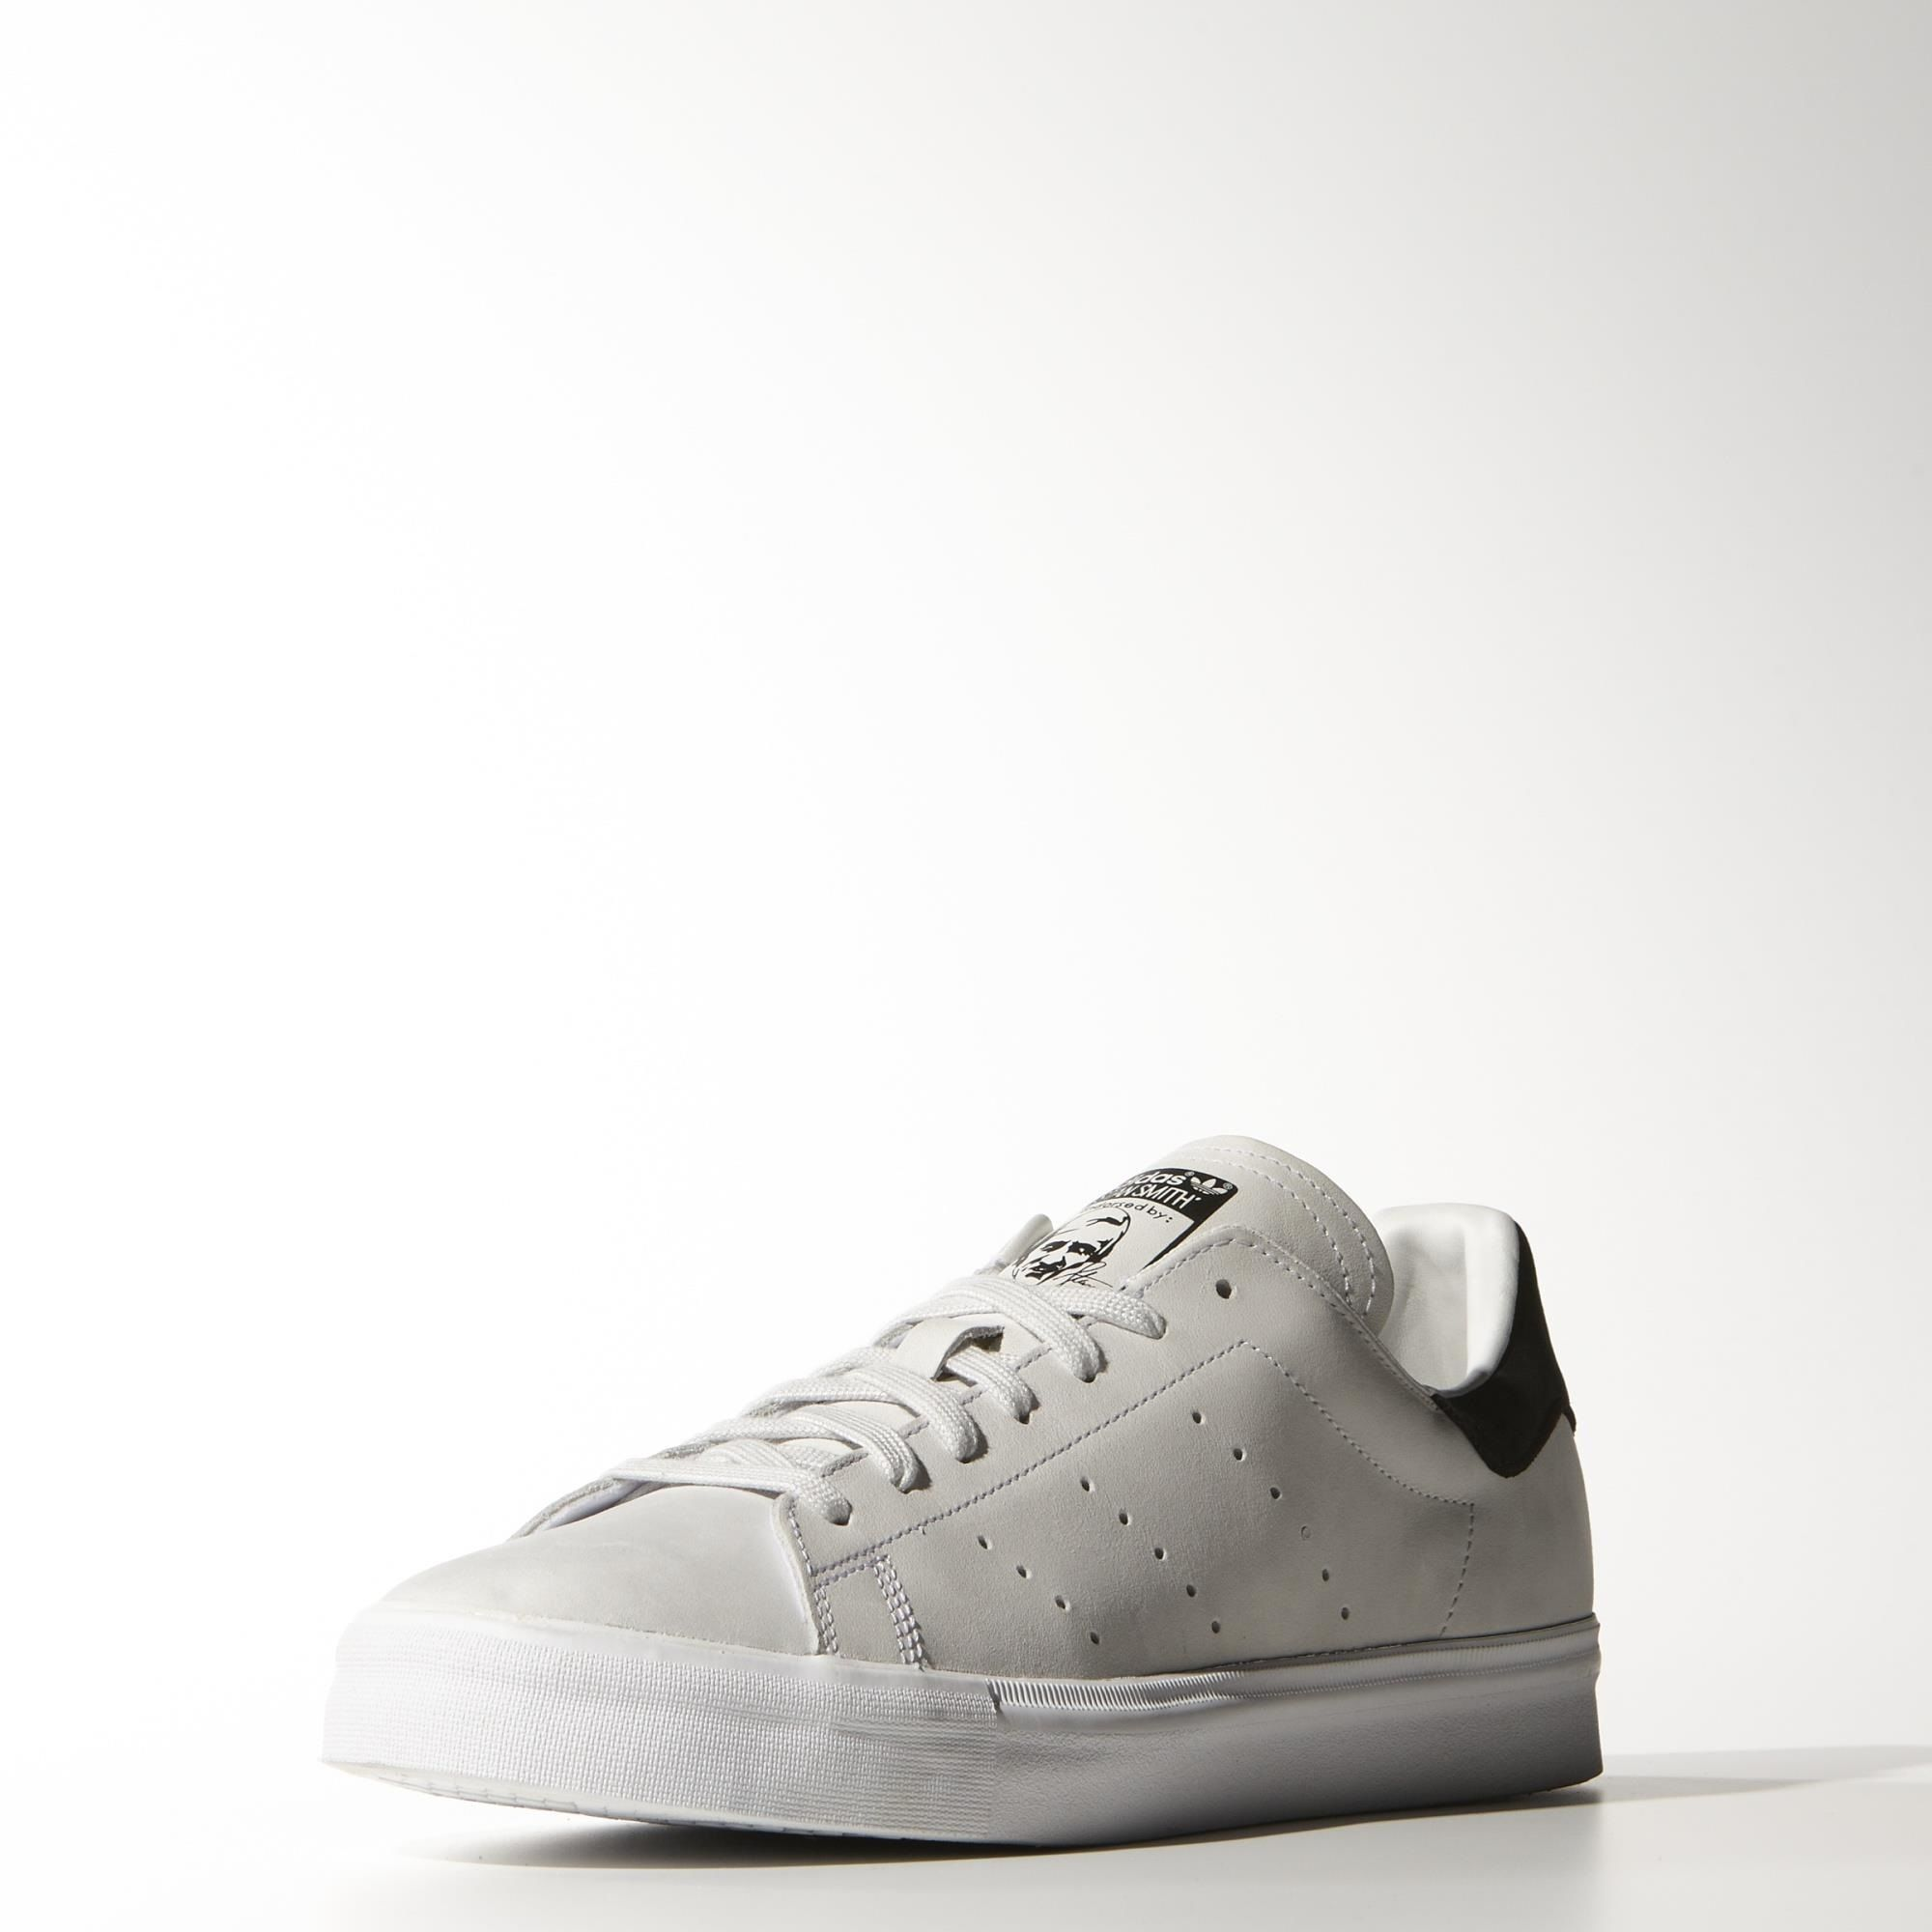 Stan Smith Vulc (With images) | Adidas shoes mens, Adidas